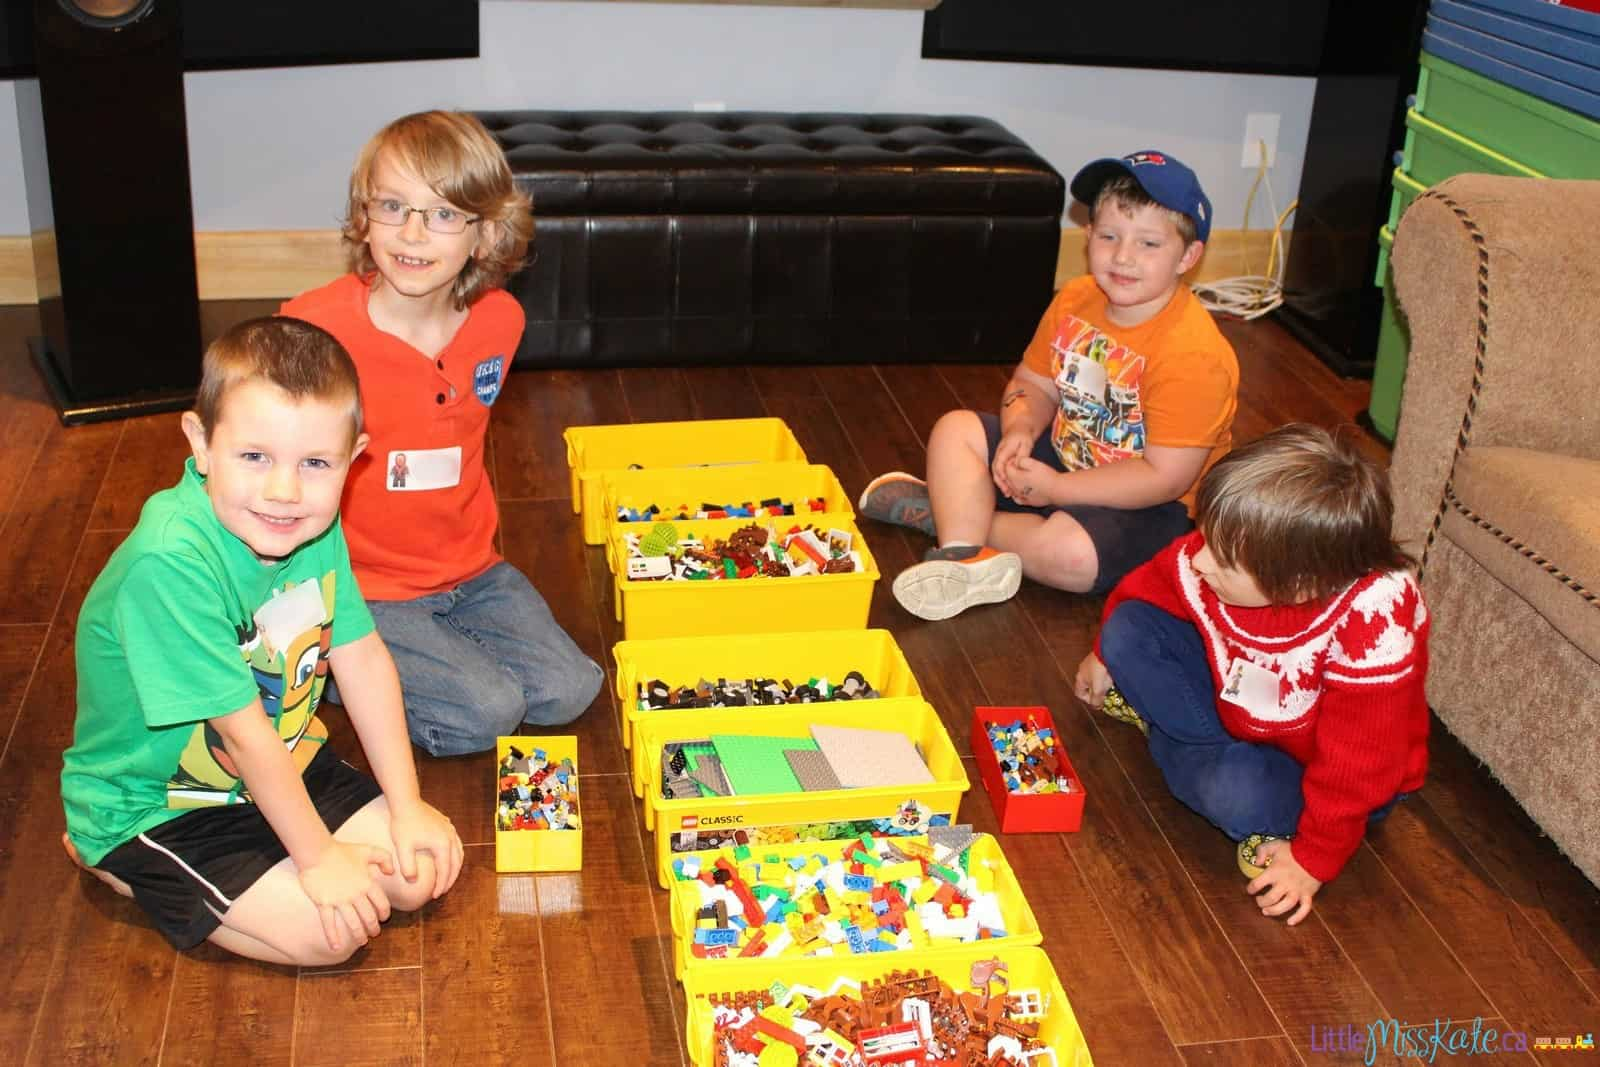 Lego Birthday Party Games And Entertainment With Kids N Bricks